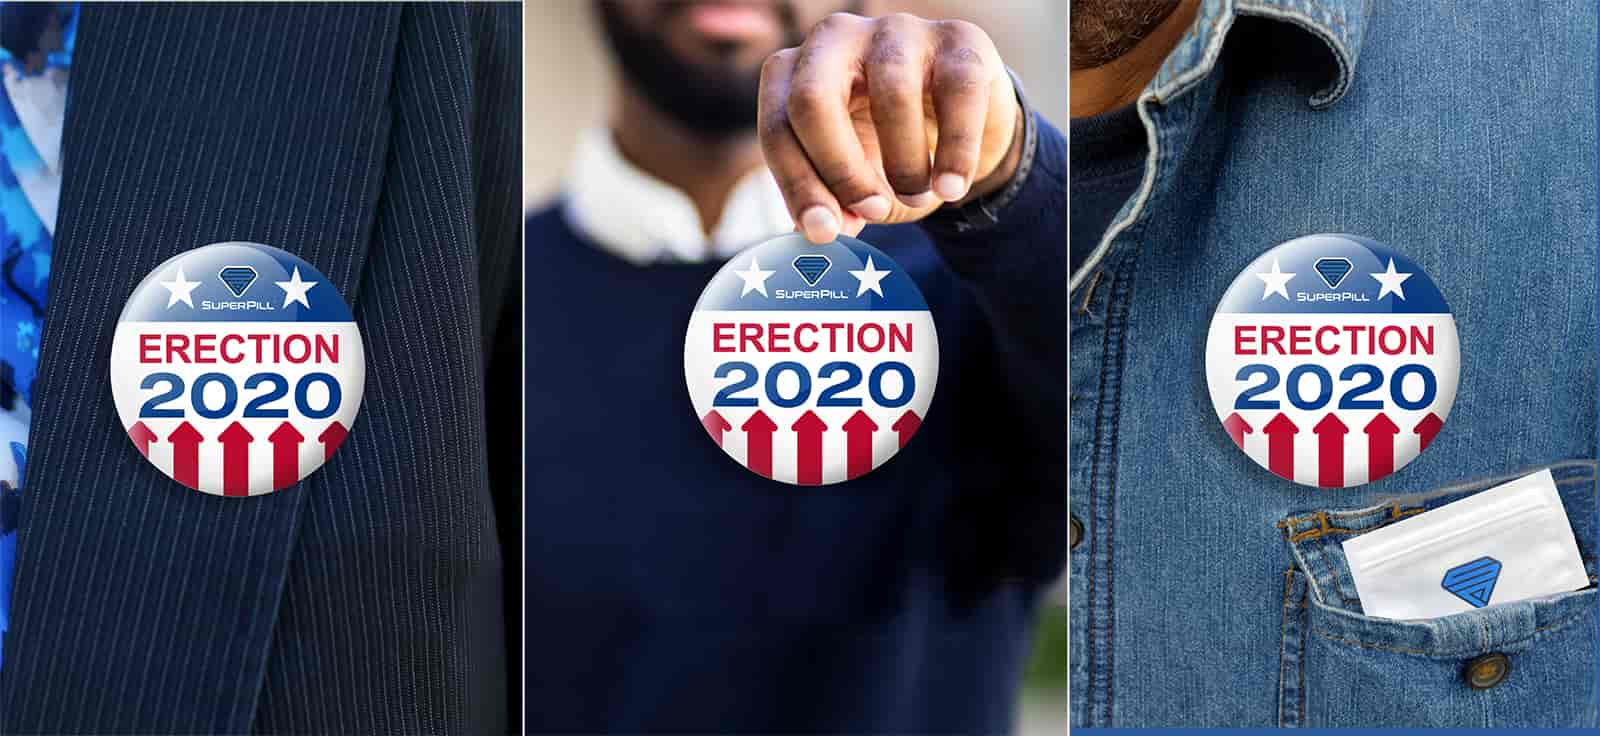 Erection 2020 - Make Your Vote Count